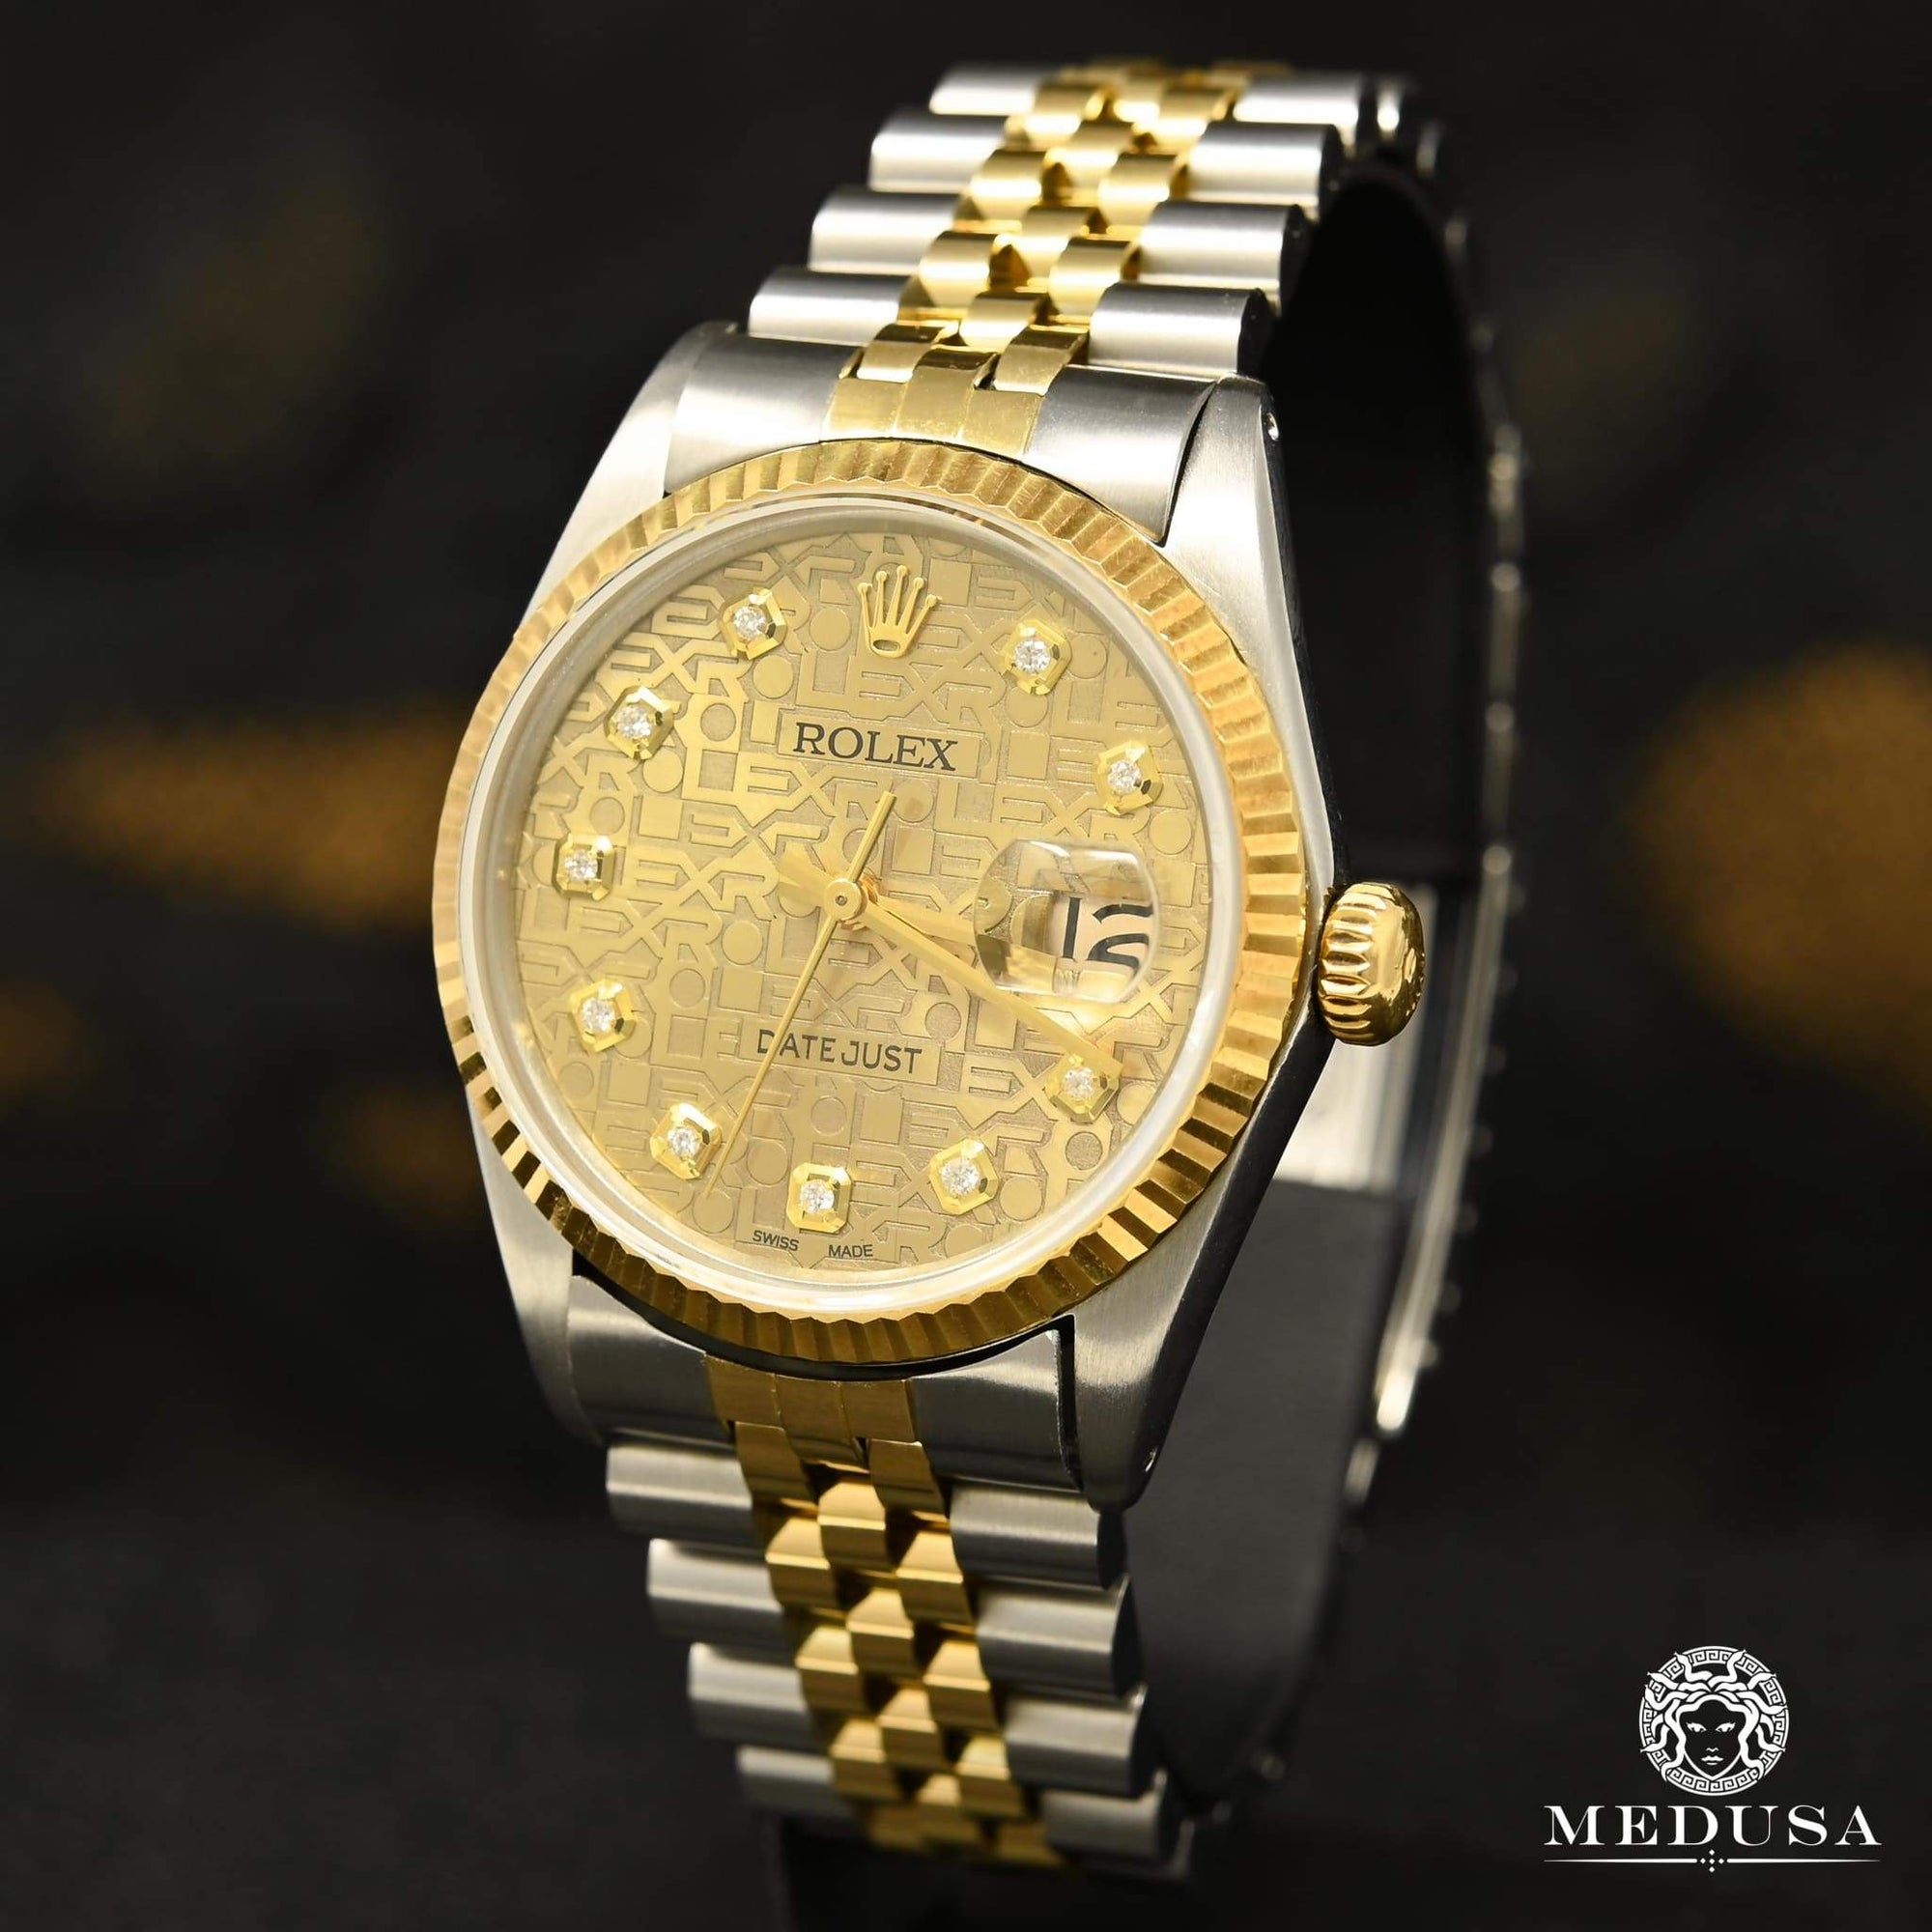 Montre Rolex | Montre Homme Rolex Datejust 36mm - Cadran Or Jubilee Or 2 Tons